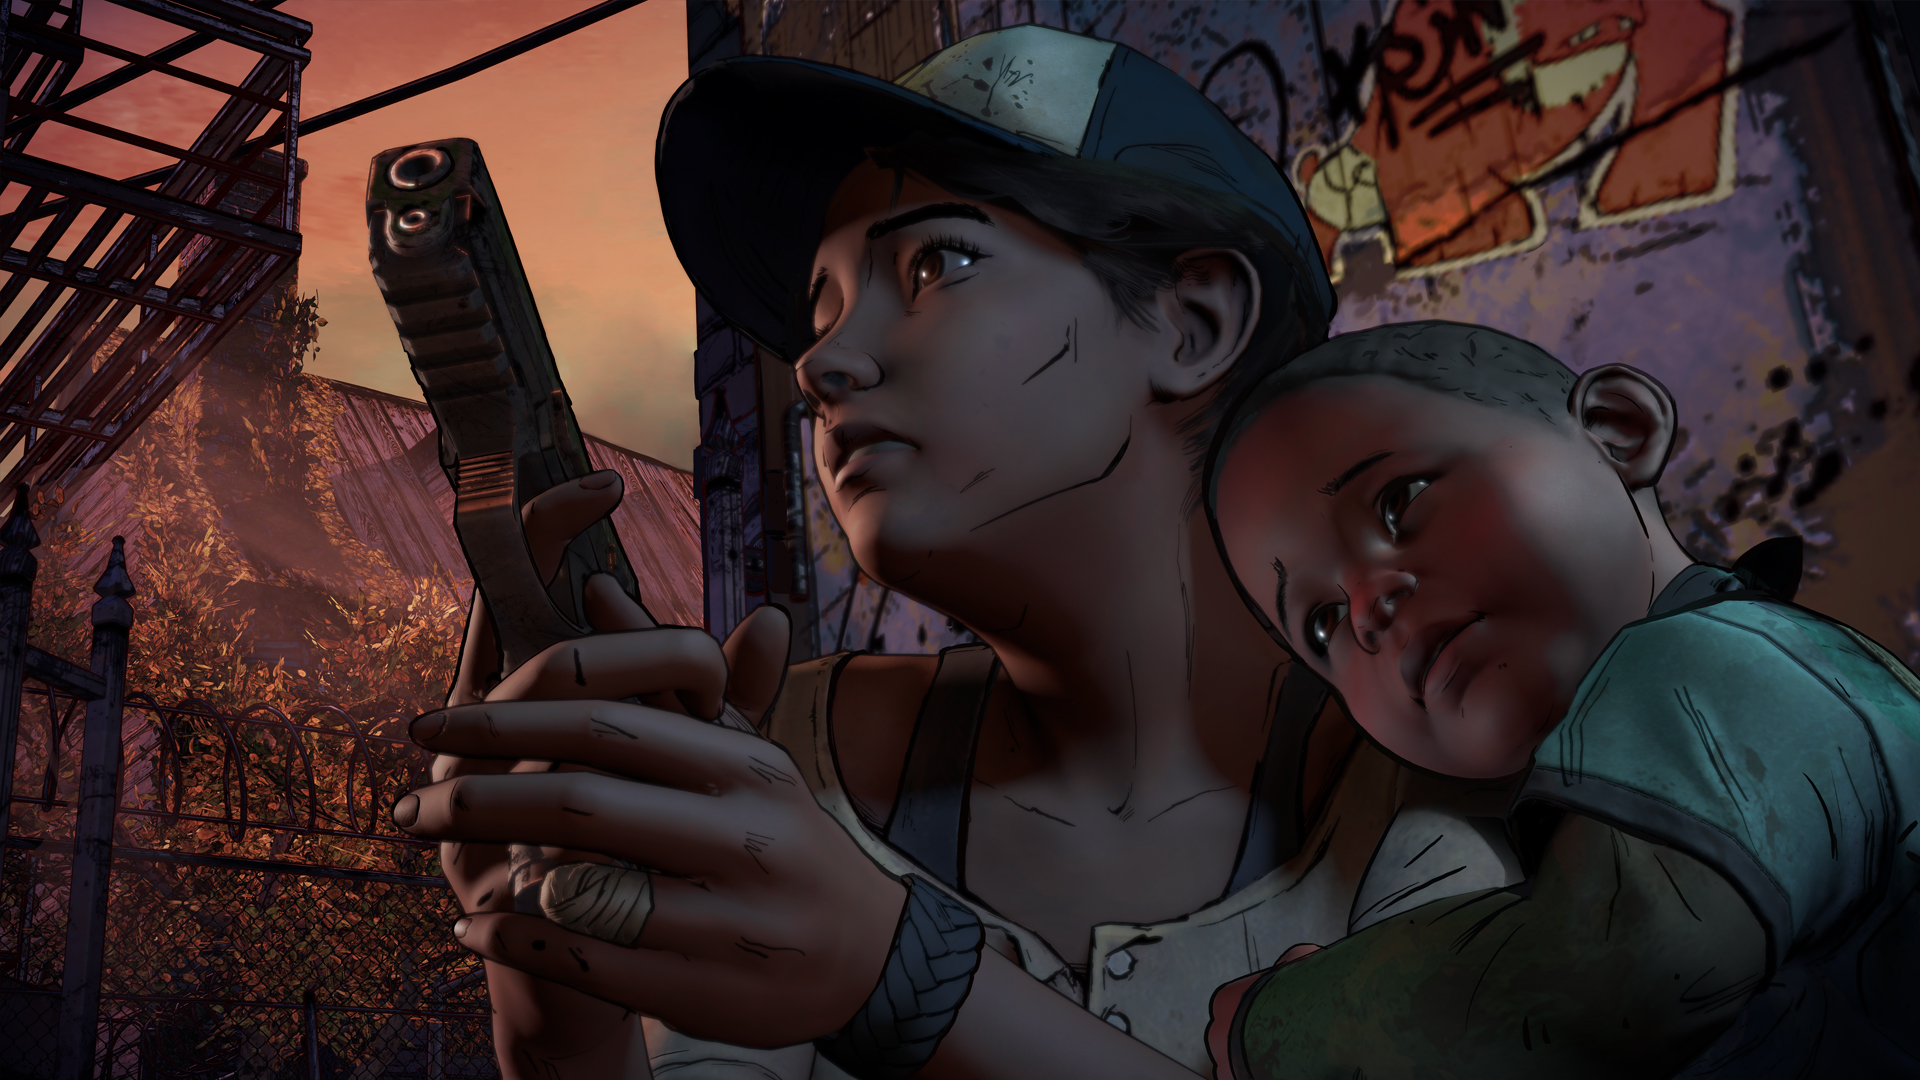 Check out some new images and details from The Walking Dead: Season 3